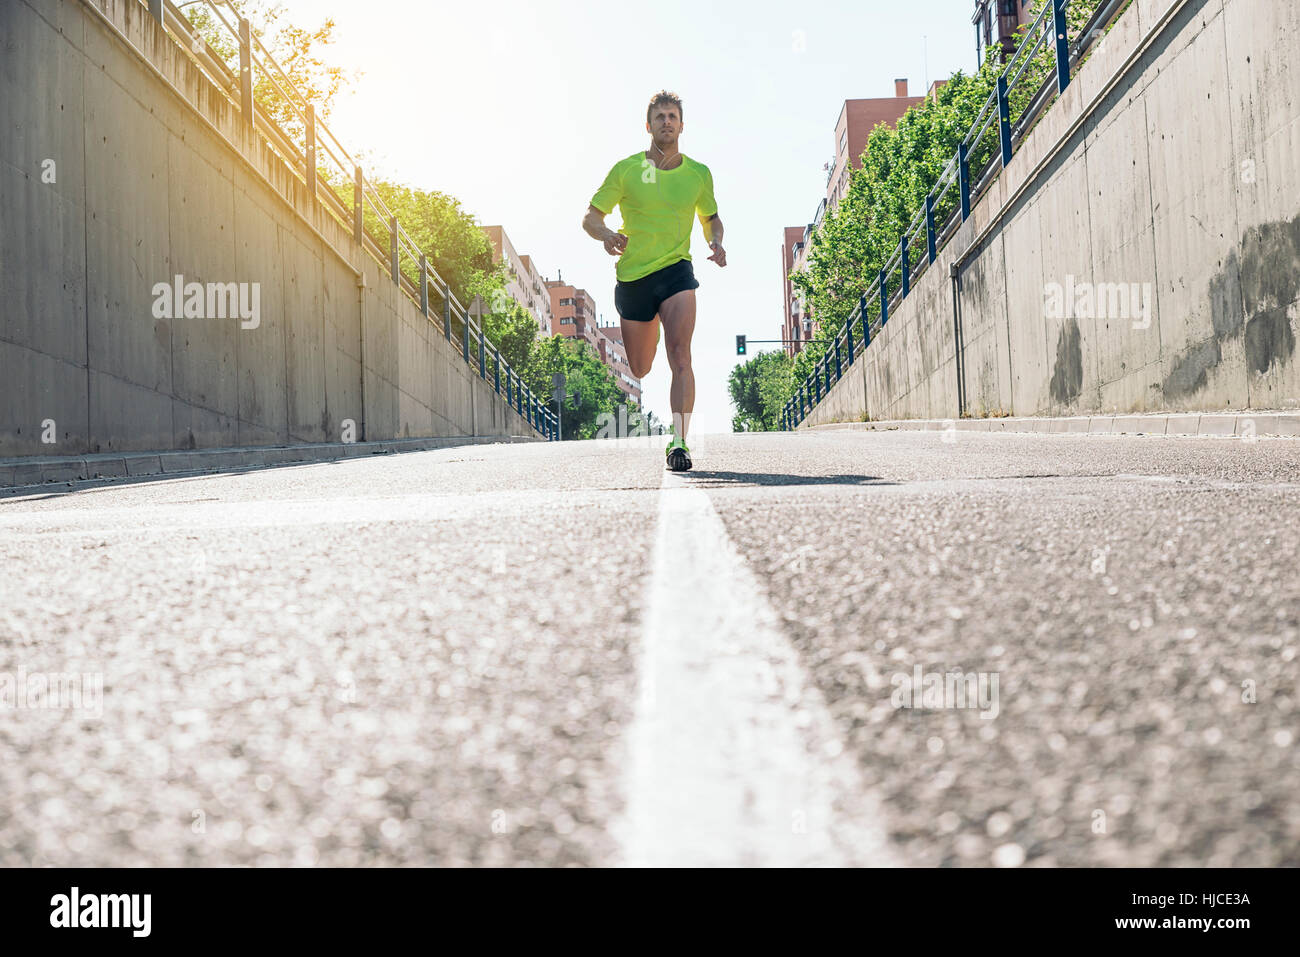 Fitness, workout, sport, lifestyle concept. Man running in the city. - Stock Image